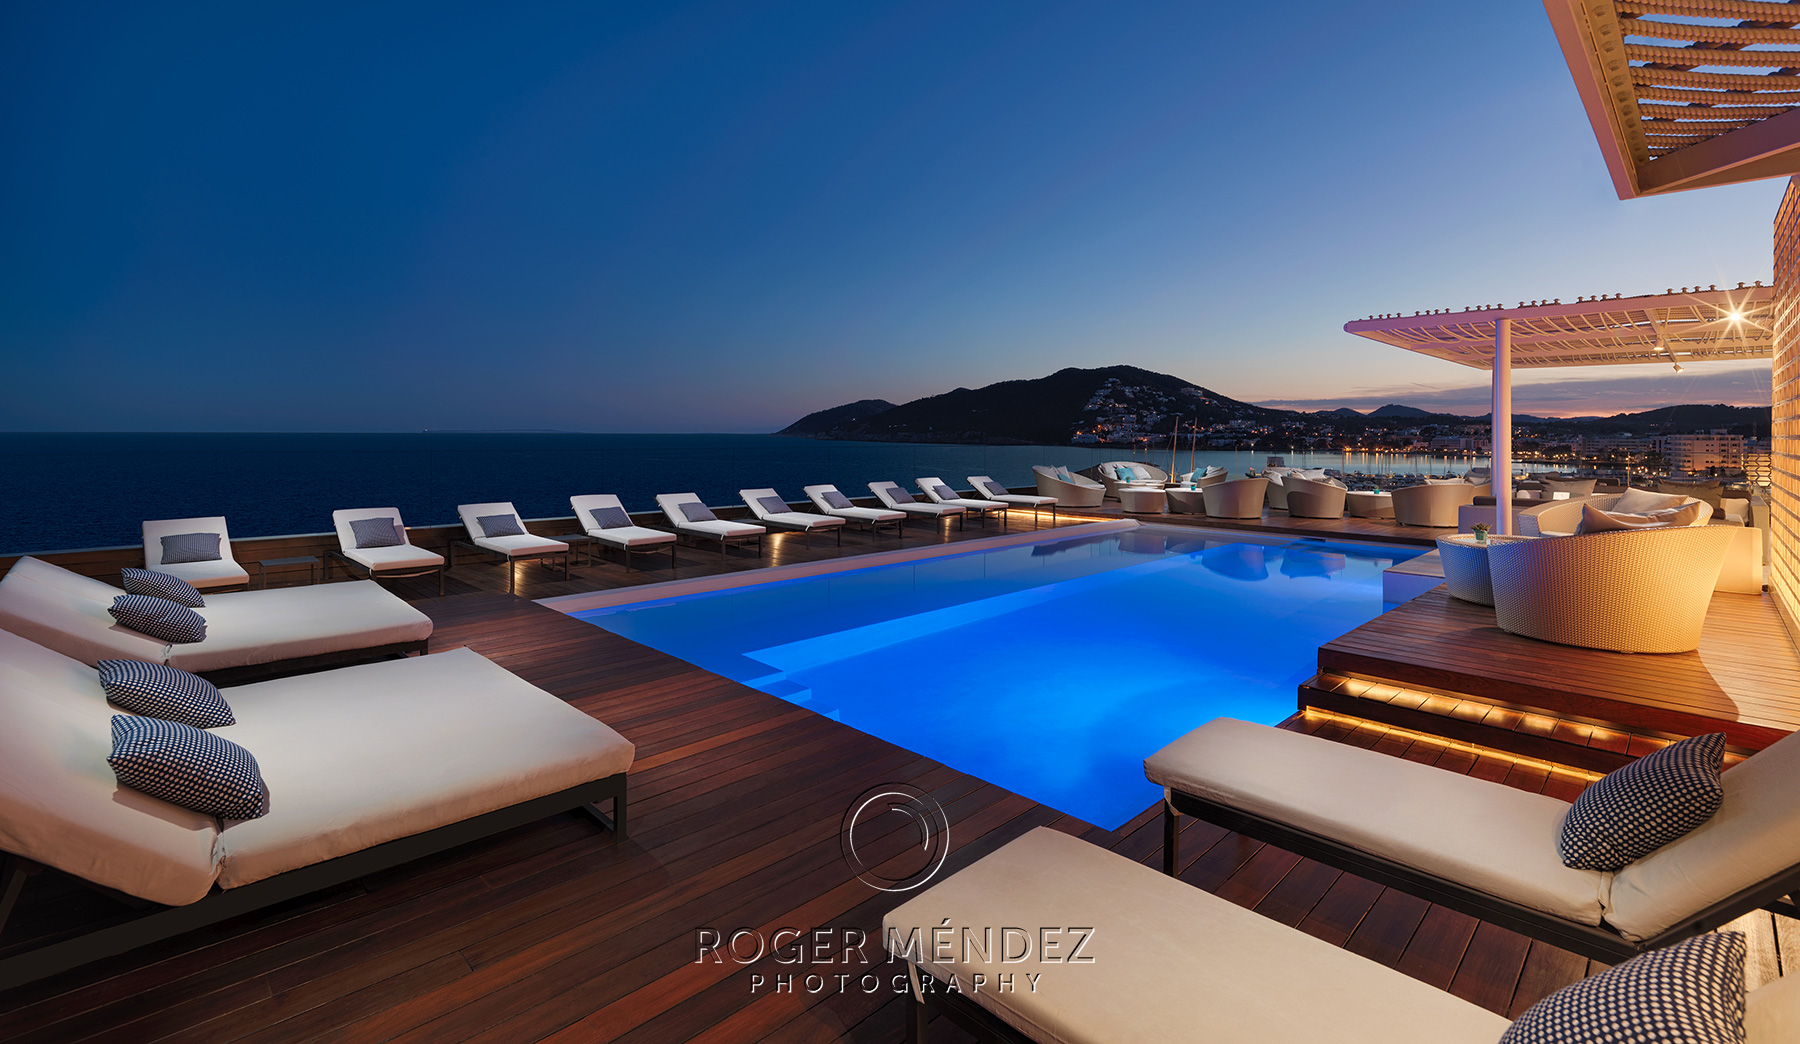 Rooftop pool at sunset